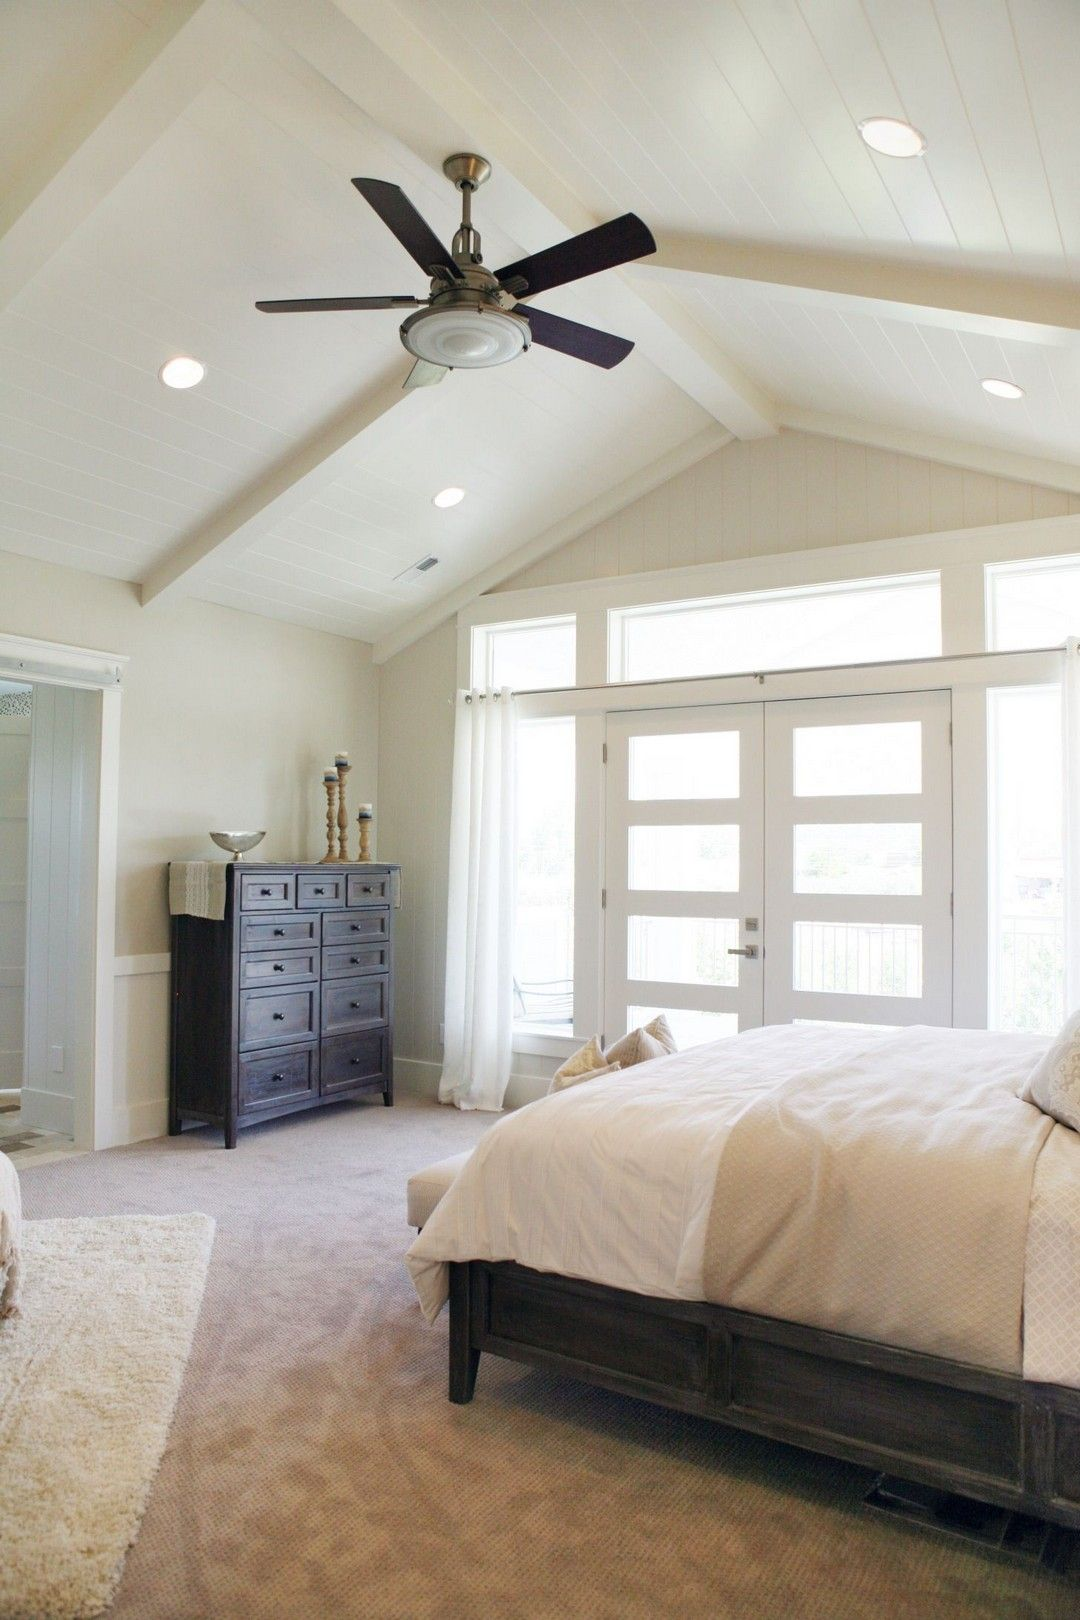 37 Amazing Master Bedroom With Jacuzzi Ideas Http Alladecor Com